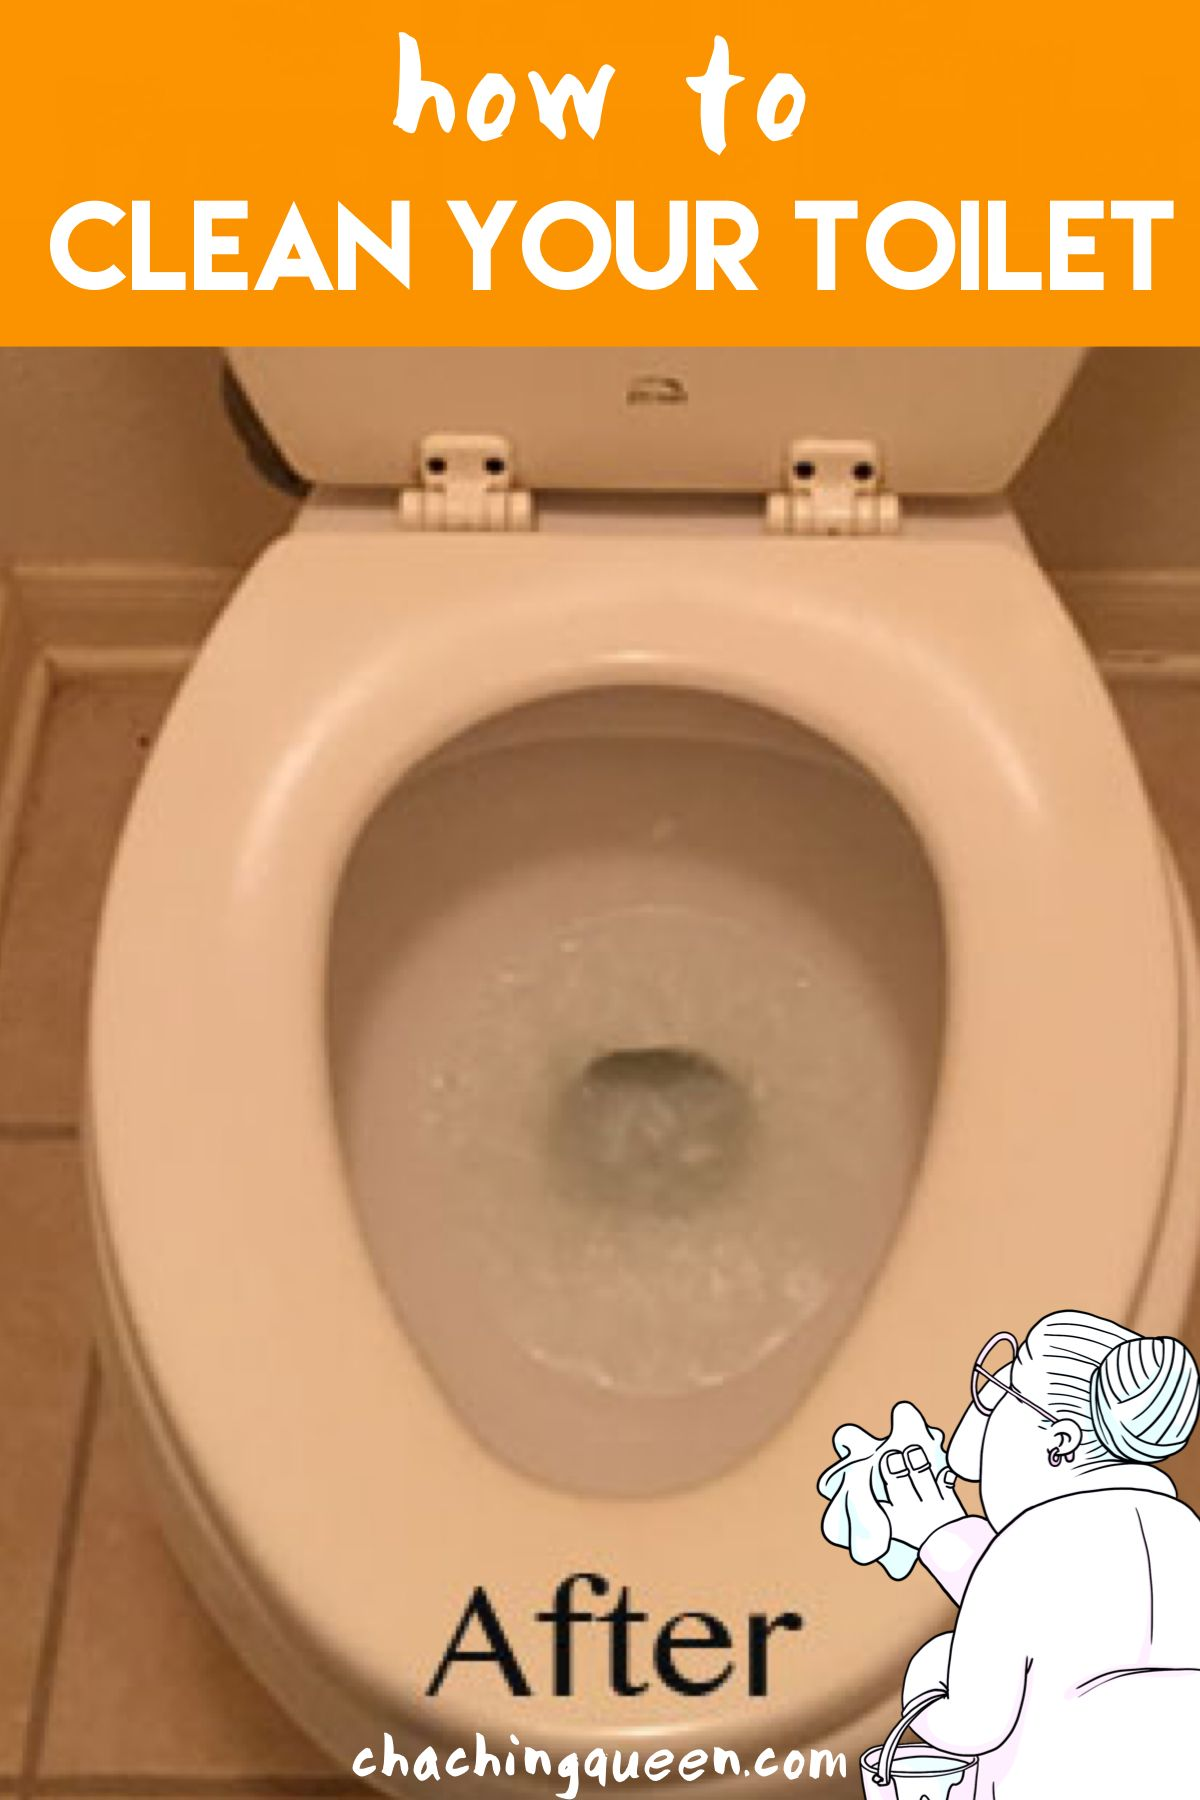 How To Clean A Toilet And How To Remove Hard Water Stains Toilet